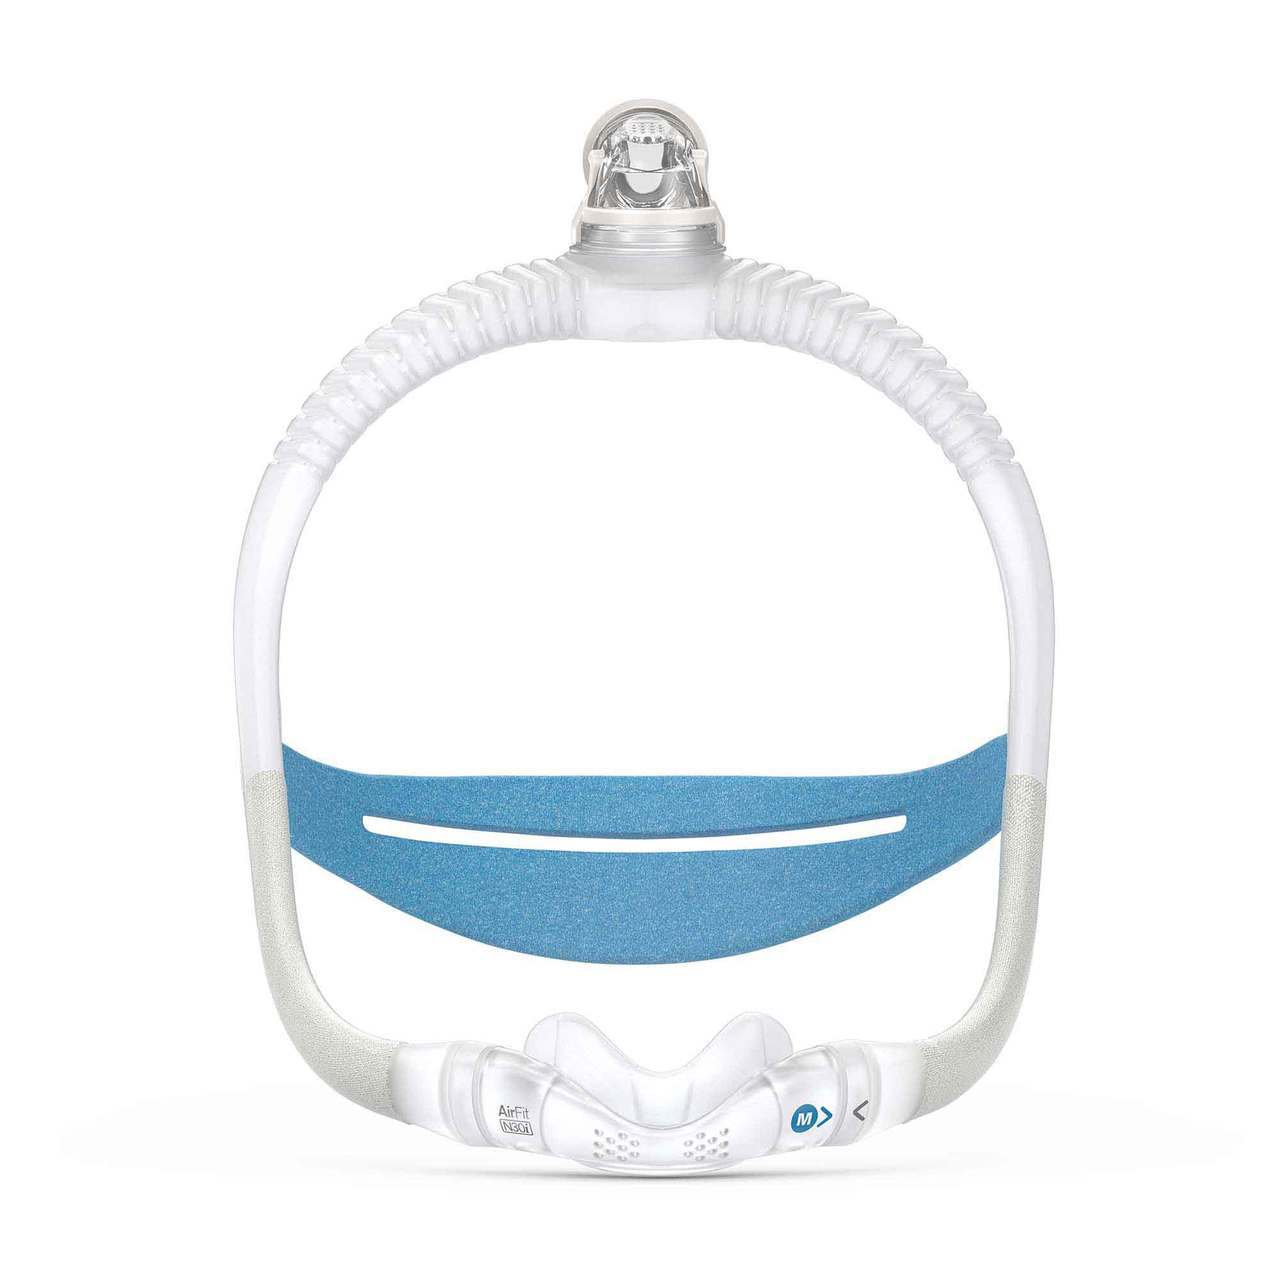 ResMed AirFit N30i Nasal Mask by ResMed from Easy CPAP